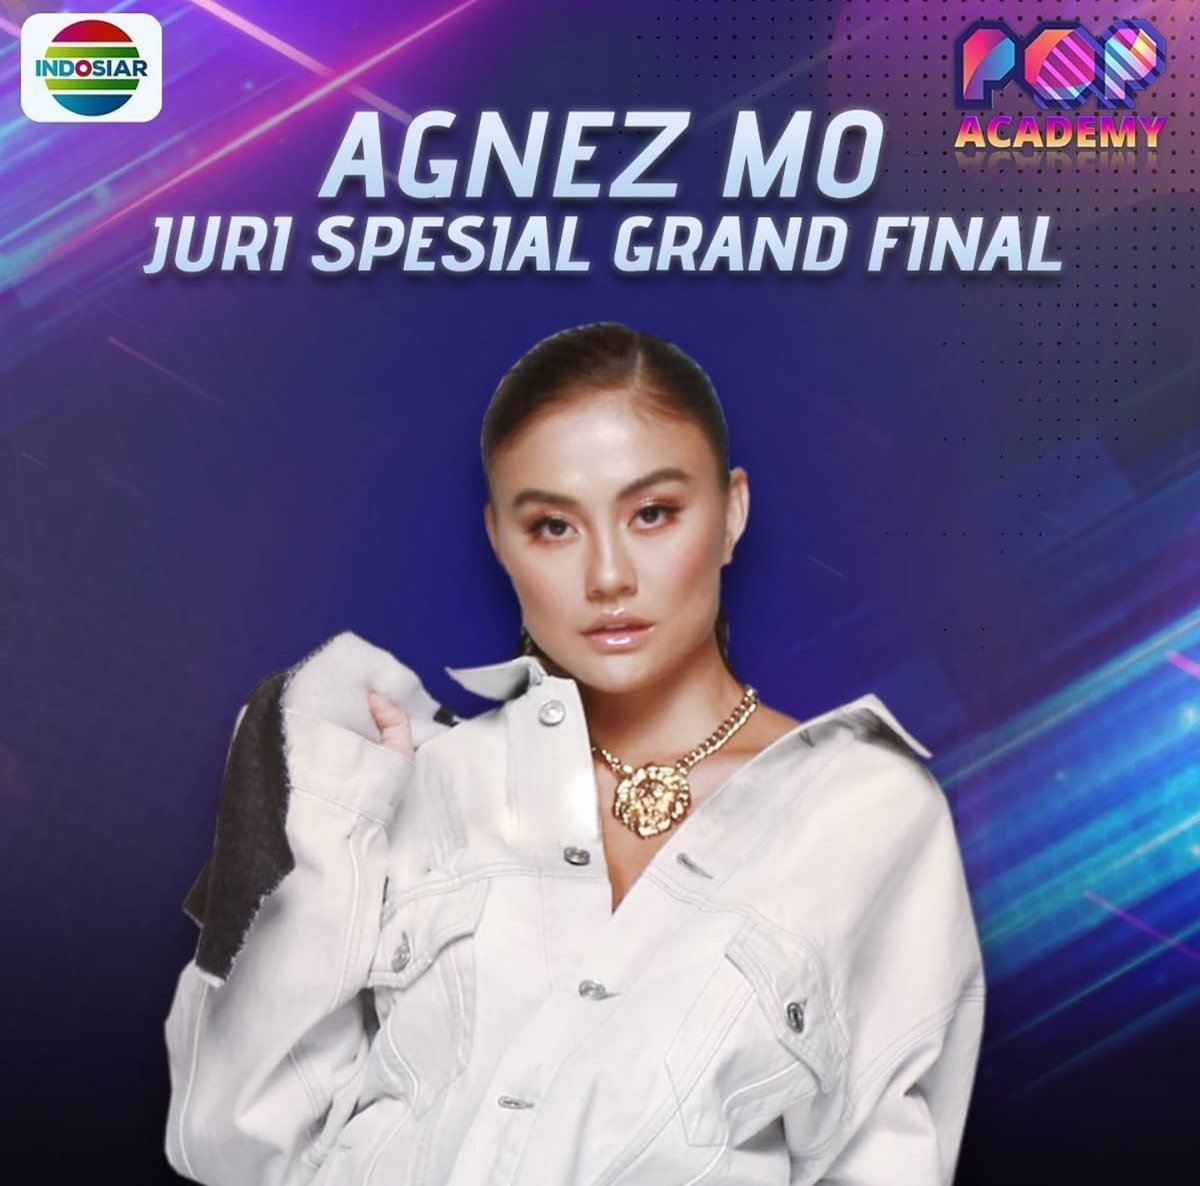 Tonight! AGNEZ MO will also be a special judge at Grand Final Concert Pop Academy. Airing live at 8pm on Indosiar. Don't miss it!